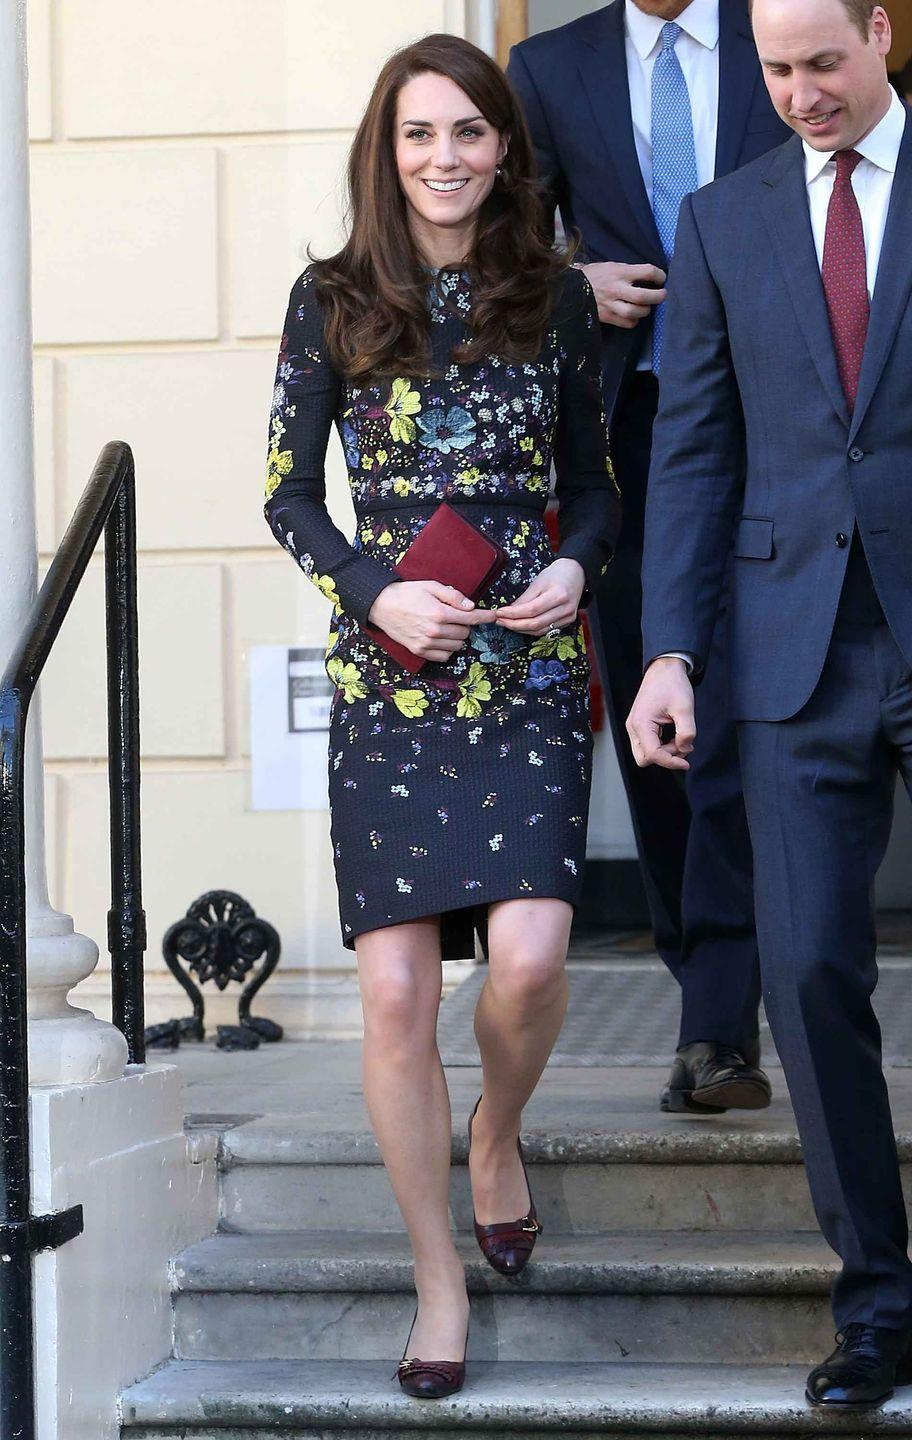 <p>Duchess Kate attends the Heads Together charity event with Prince William and Prince Harry. The Duchess wears a floral Erdem dress in a classic silhouette and paired the look with a Mulberry clutch and leather fringe pumps.</p>